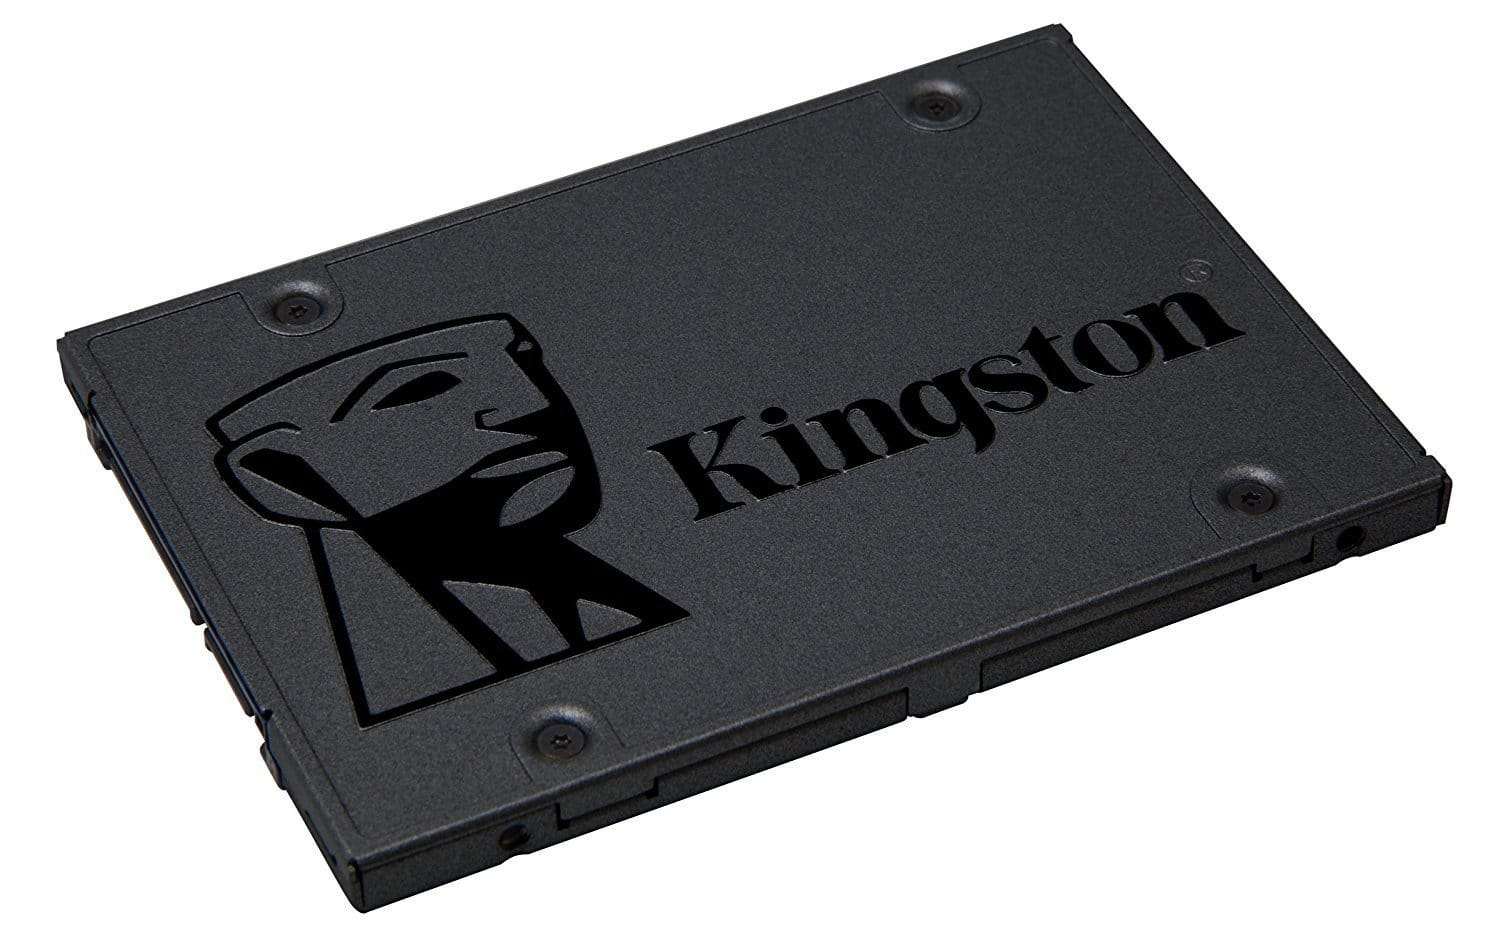 Most Aggressive price on Kingston A400 SSD 240GB SSD $46.69